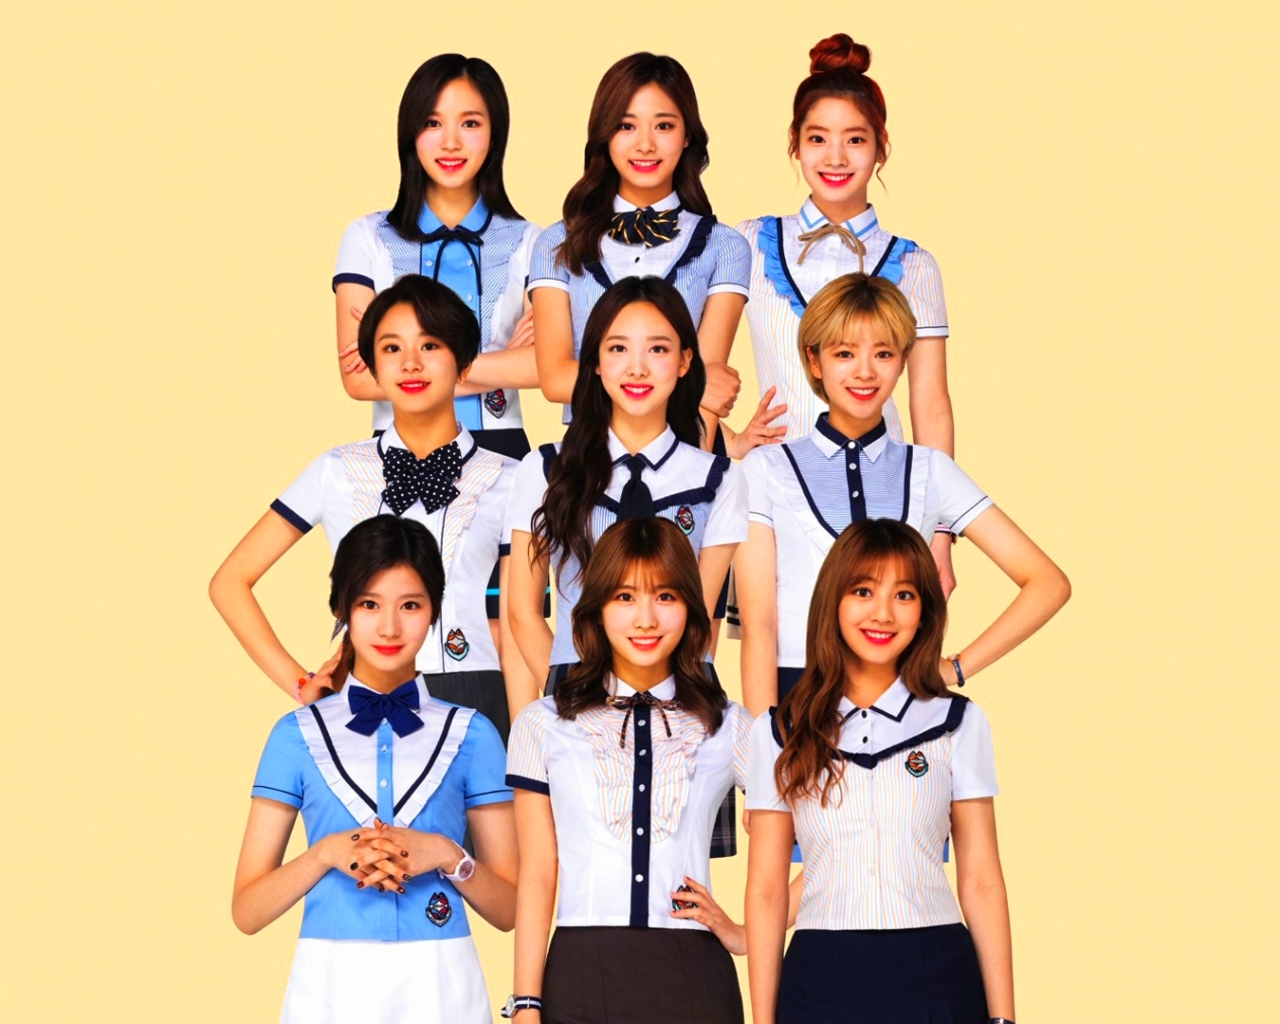 Twice Wallpaper Kpop Wallpaper 41566762 Fanpop